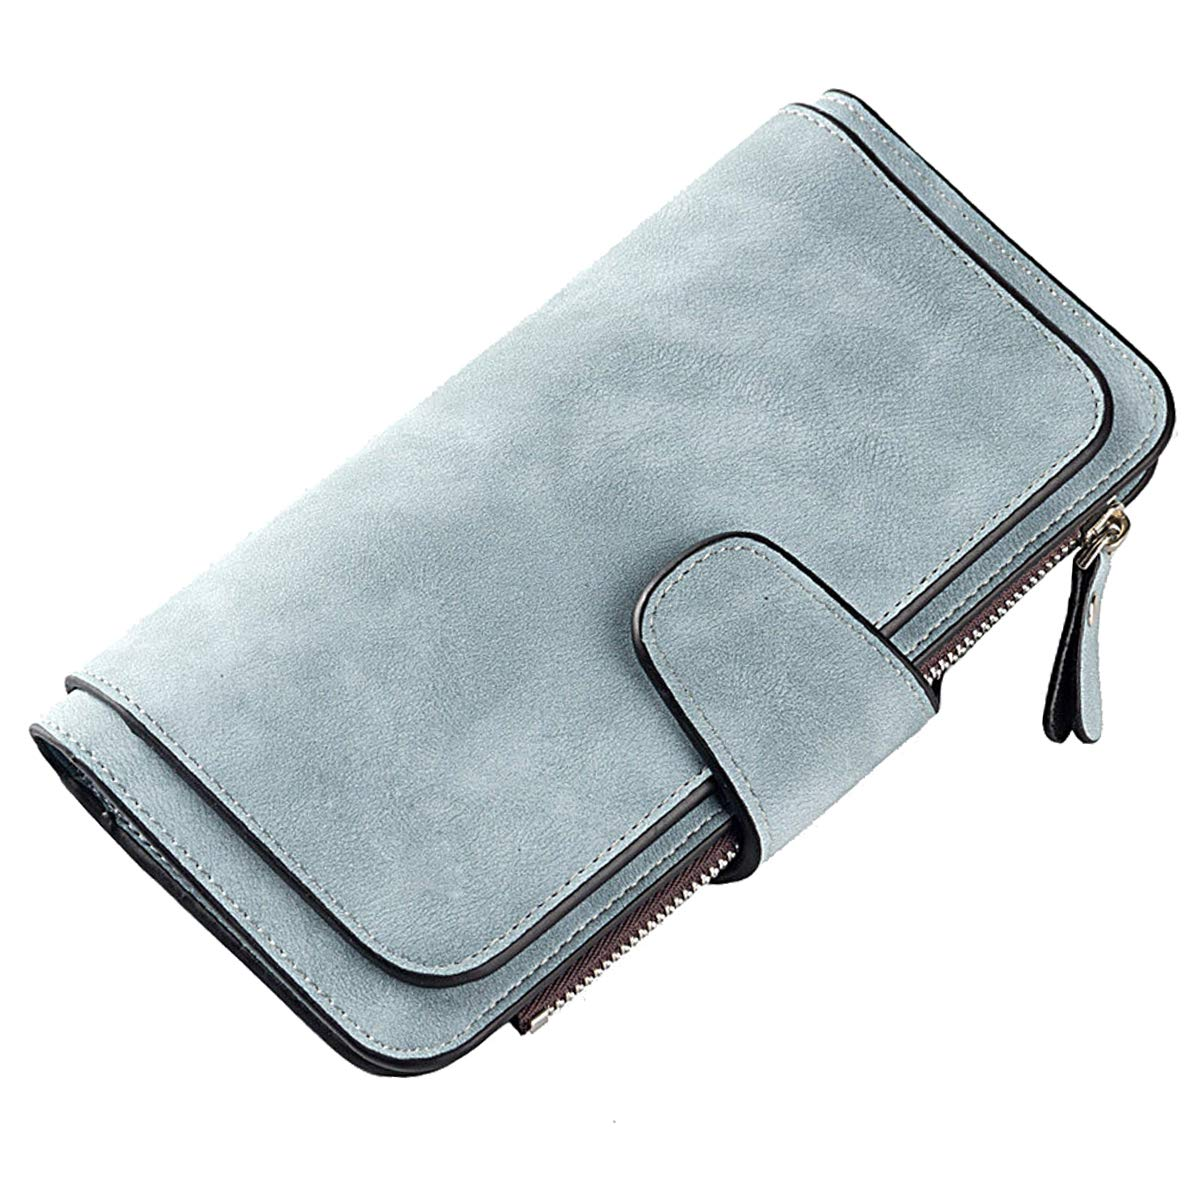 Laynos Wallet for Women Leather Clutch Purse Long Ladies Credit Card Holder Organizer Travel Purse Blue by Laynos (Image #2)